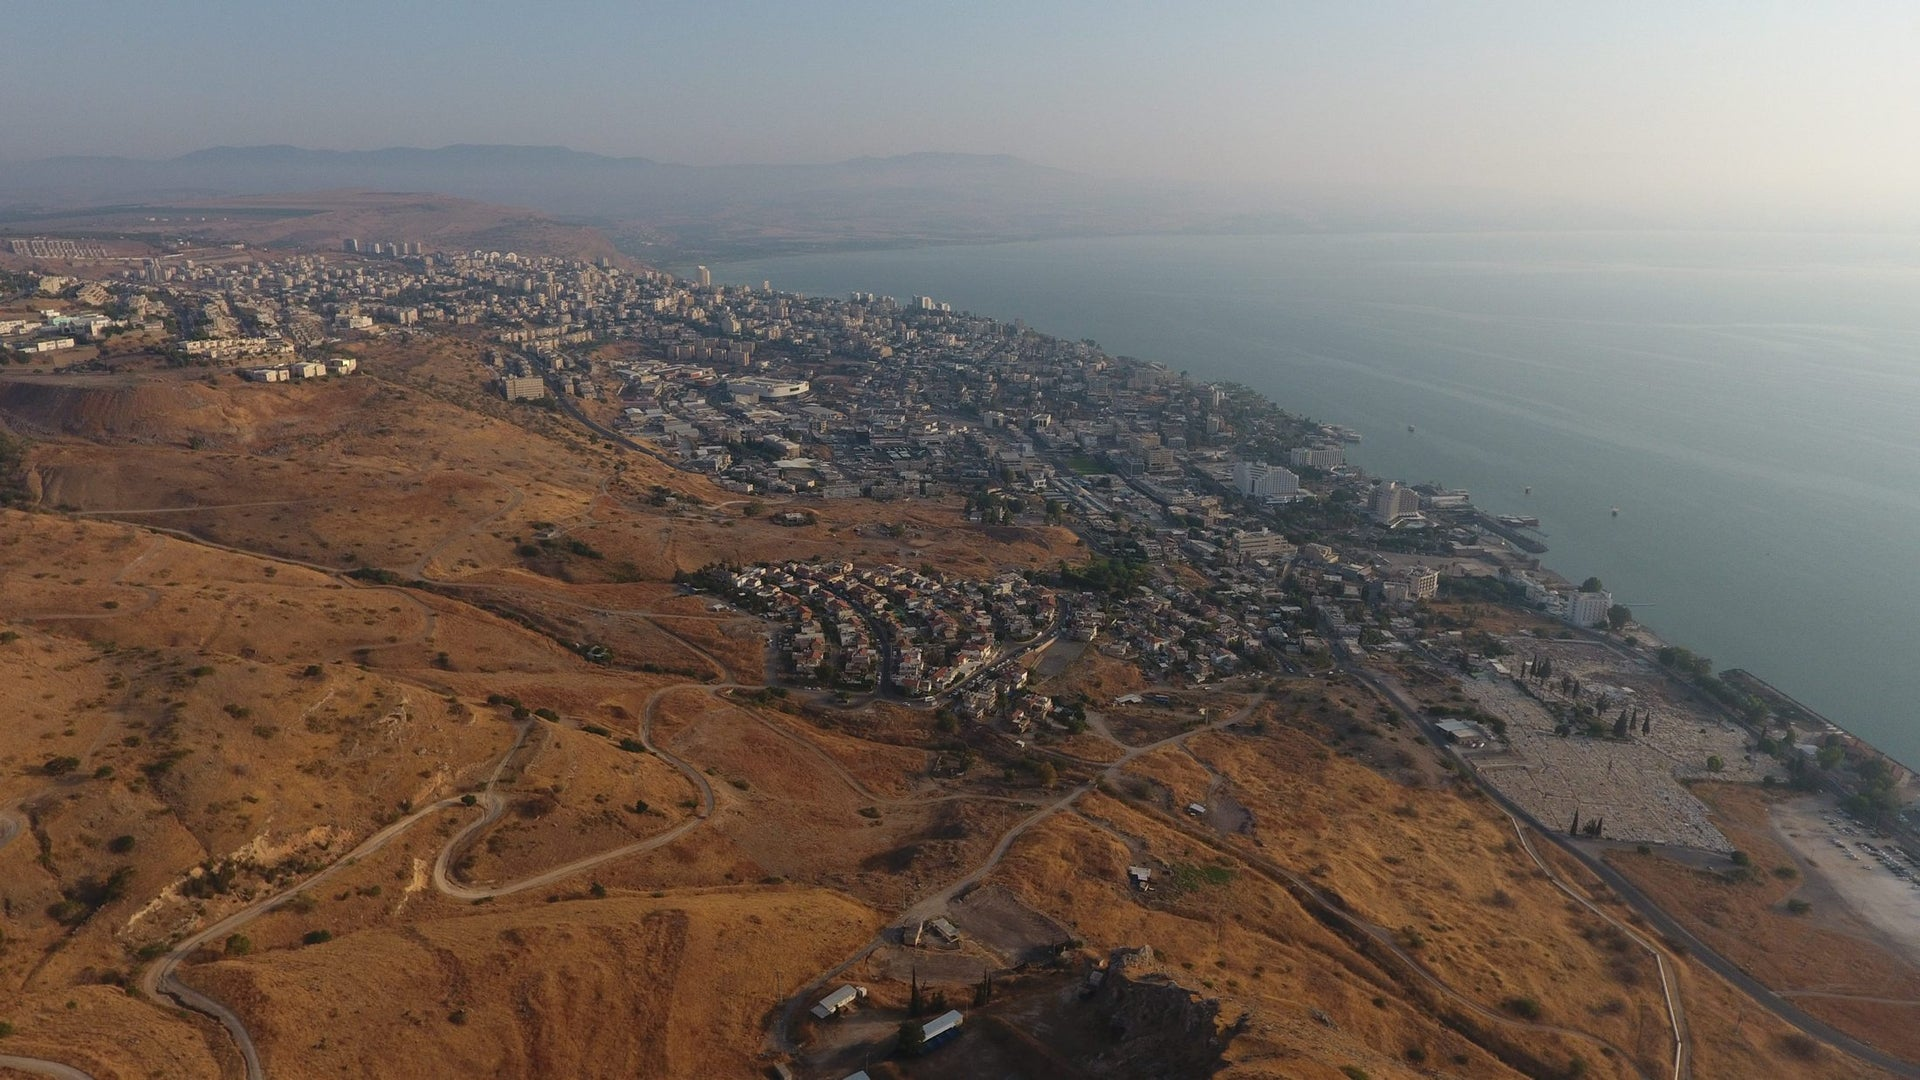 Aerial view of the modern city of Tiberias, built on the ruins of the polis founded in 18 C.E. by Herod Antipas on the shores of the Sea of Galilee